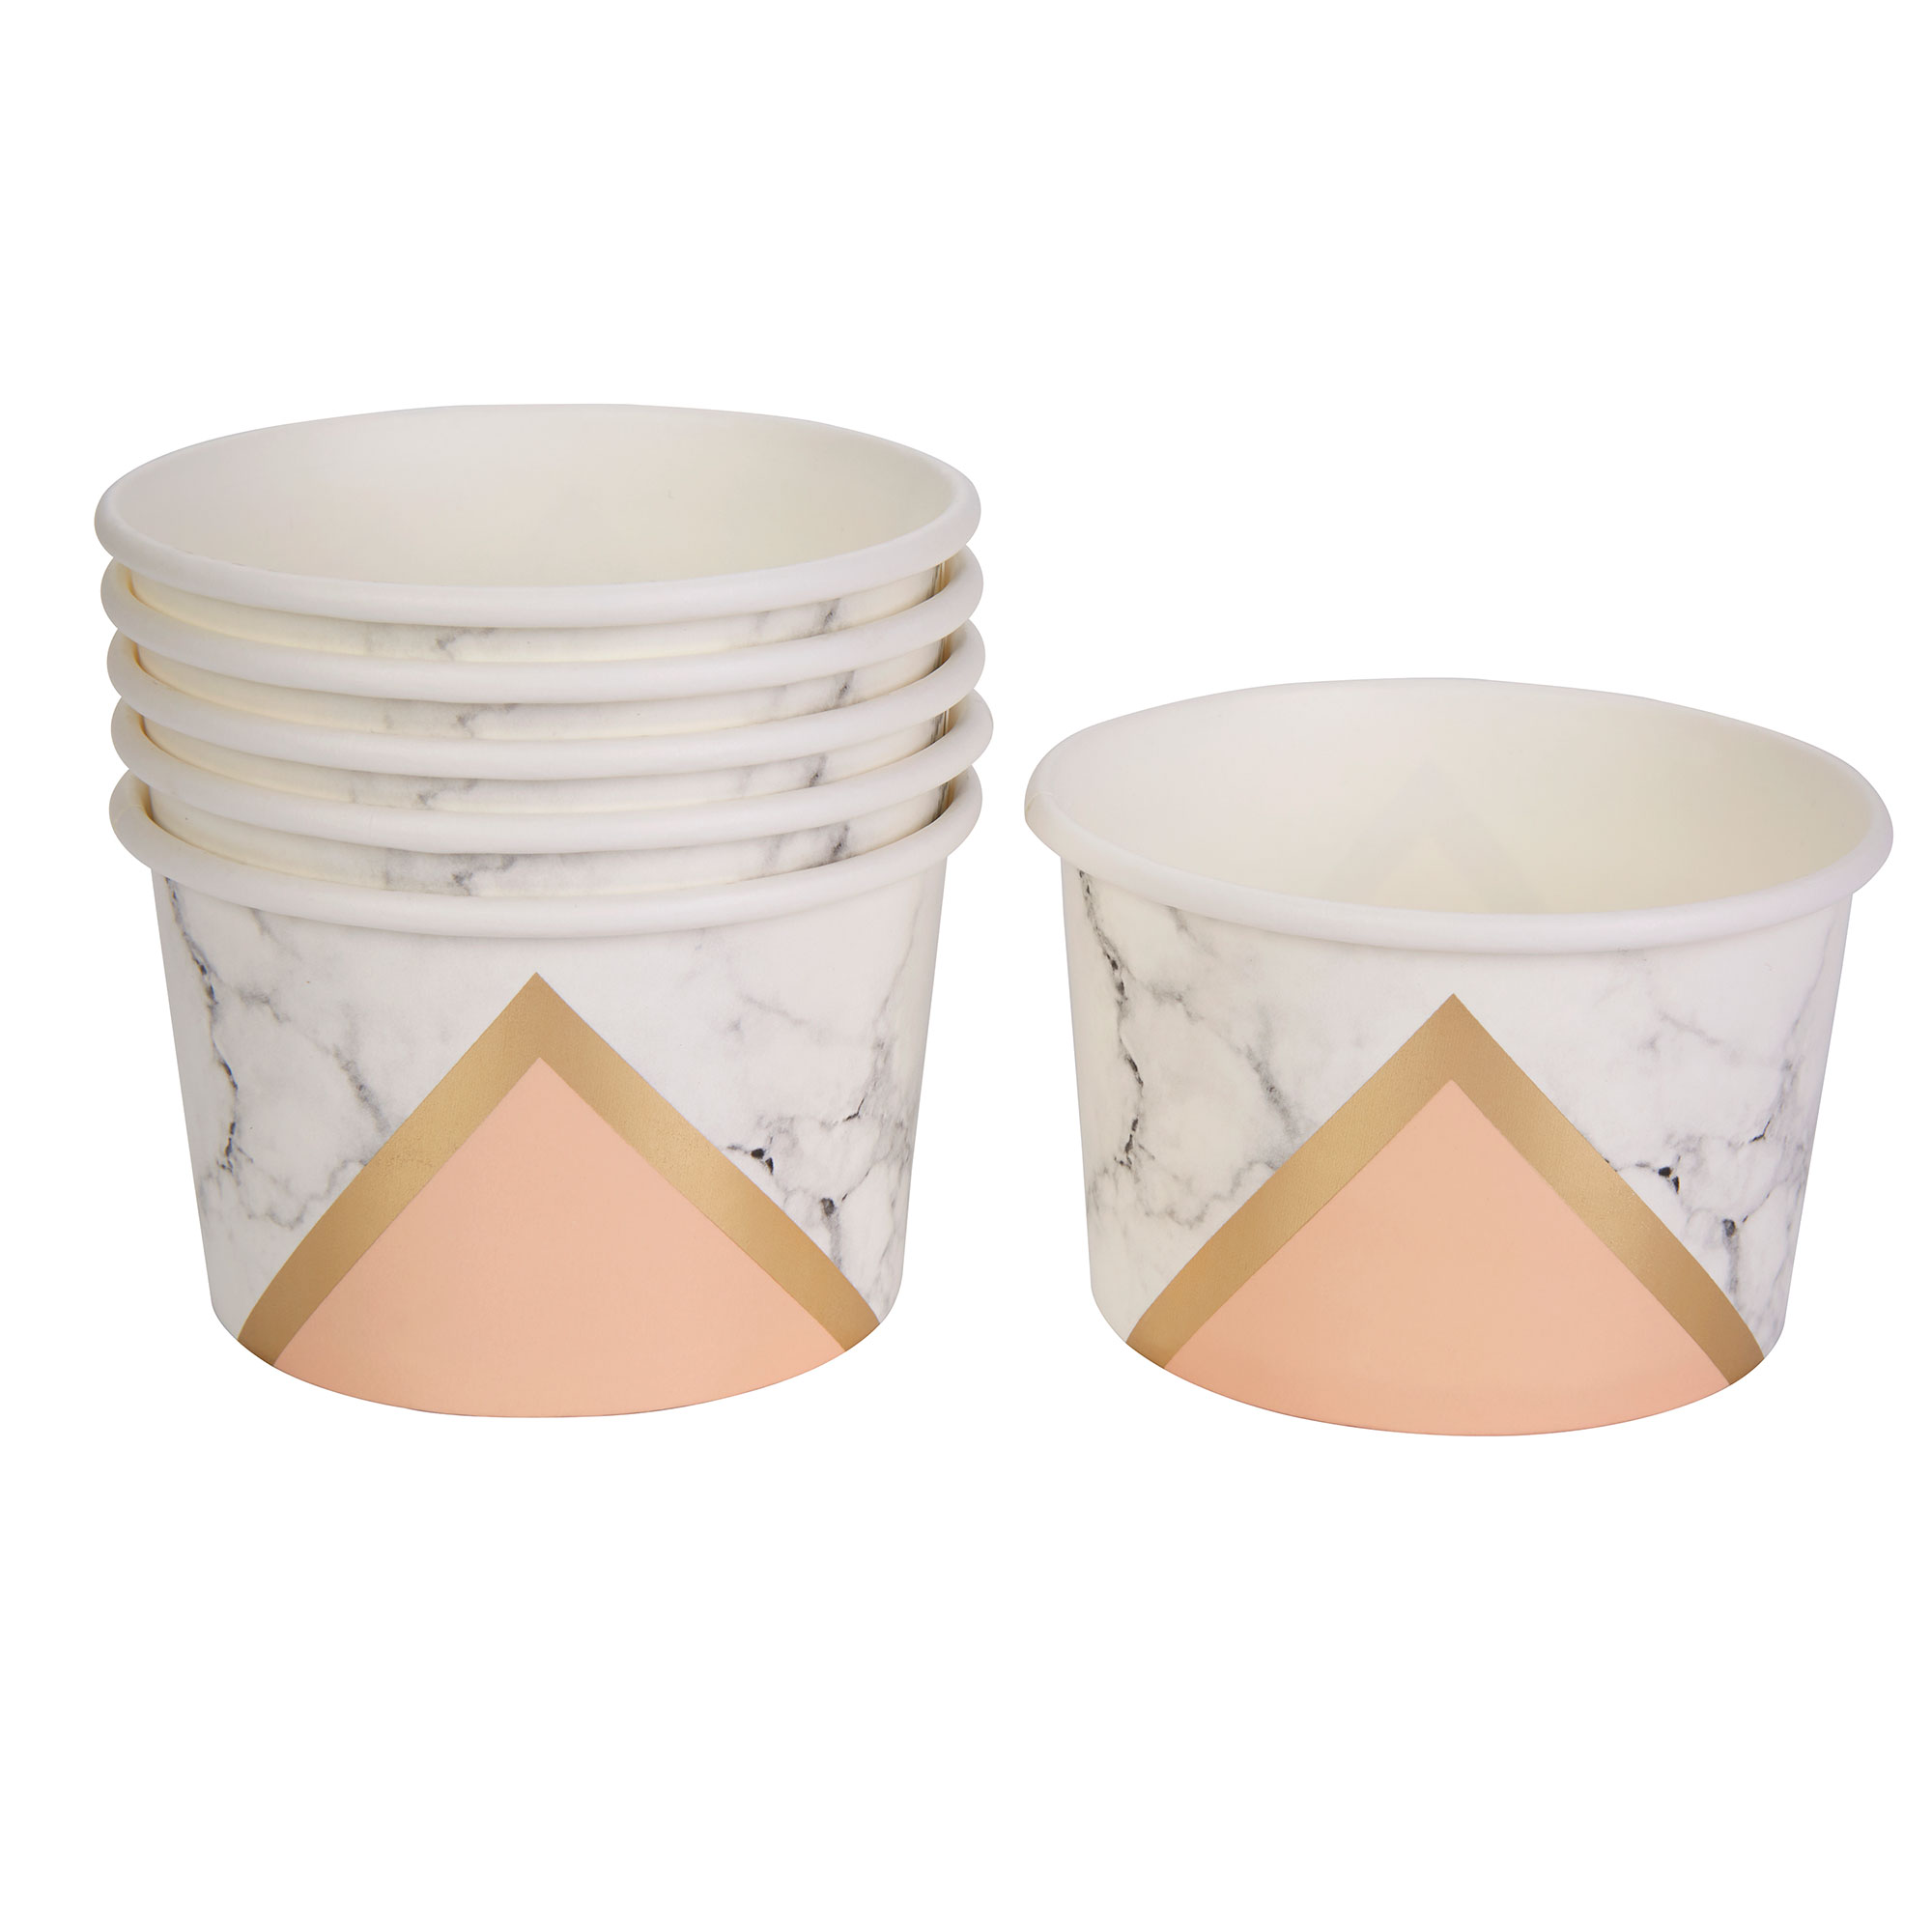 Colour Block Marble Tub - Peach